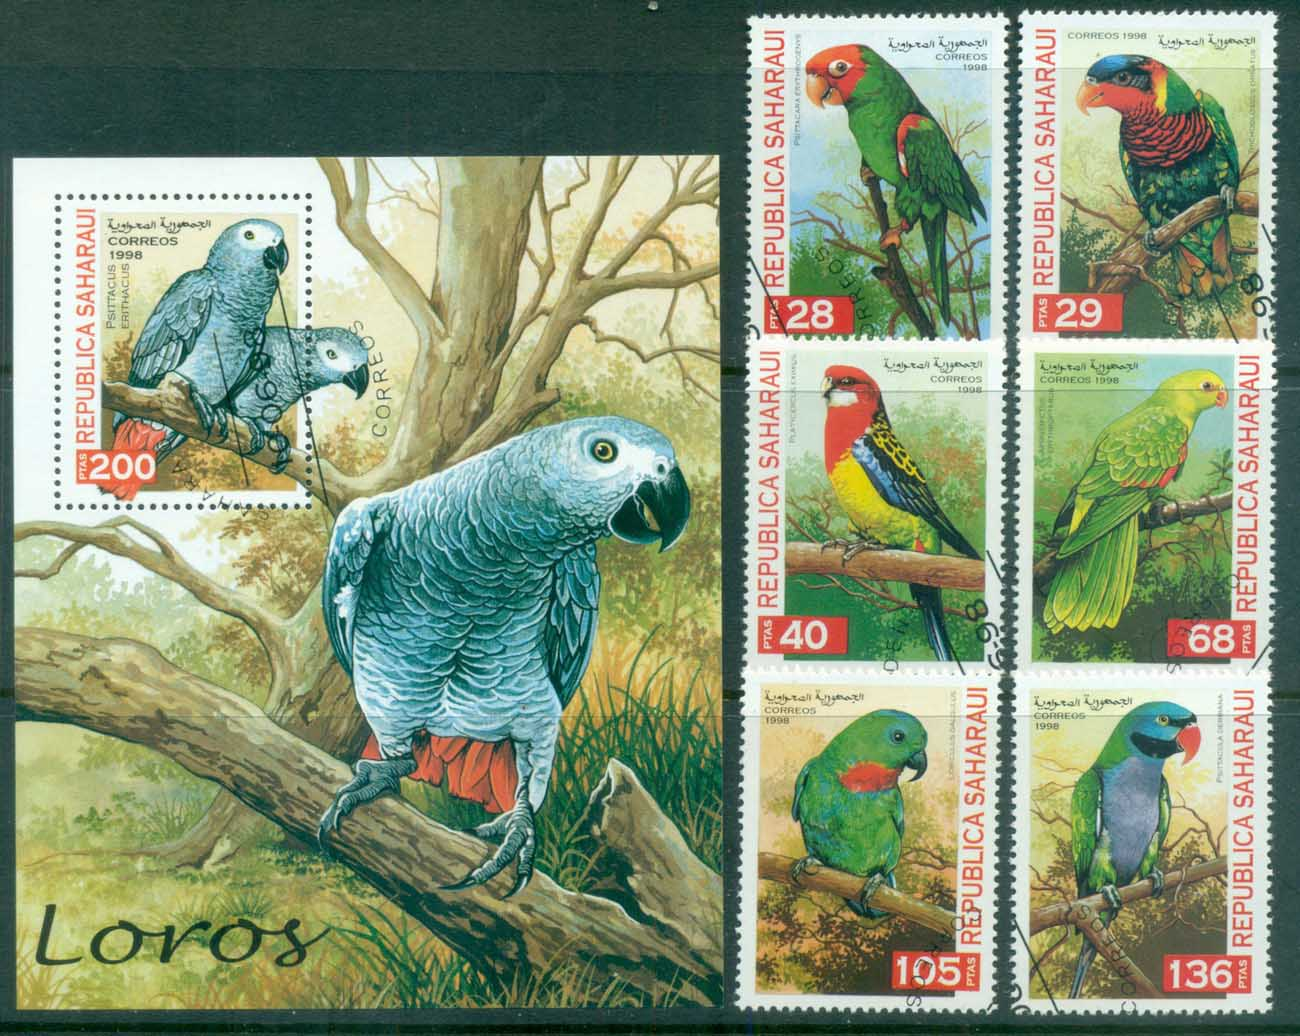 Sahara Occidental 1998 Parrots + MS CTO